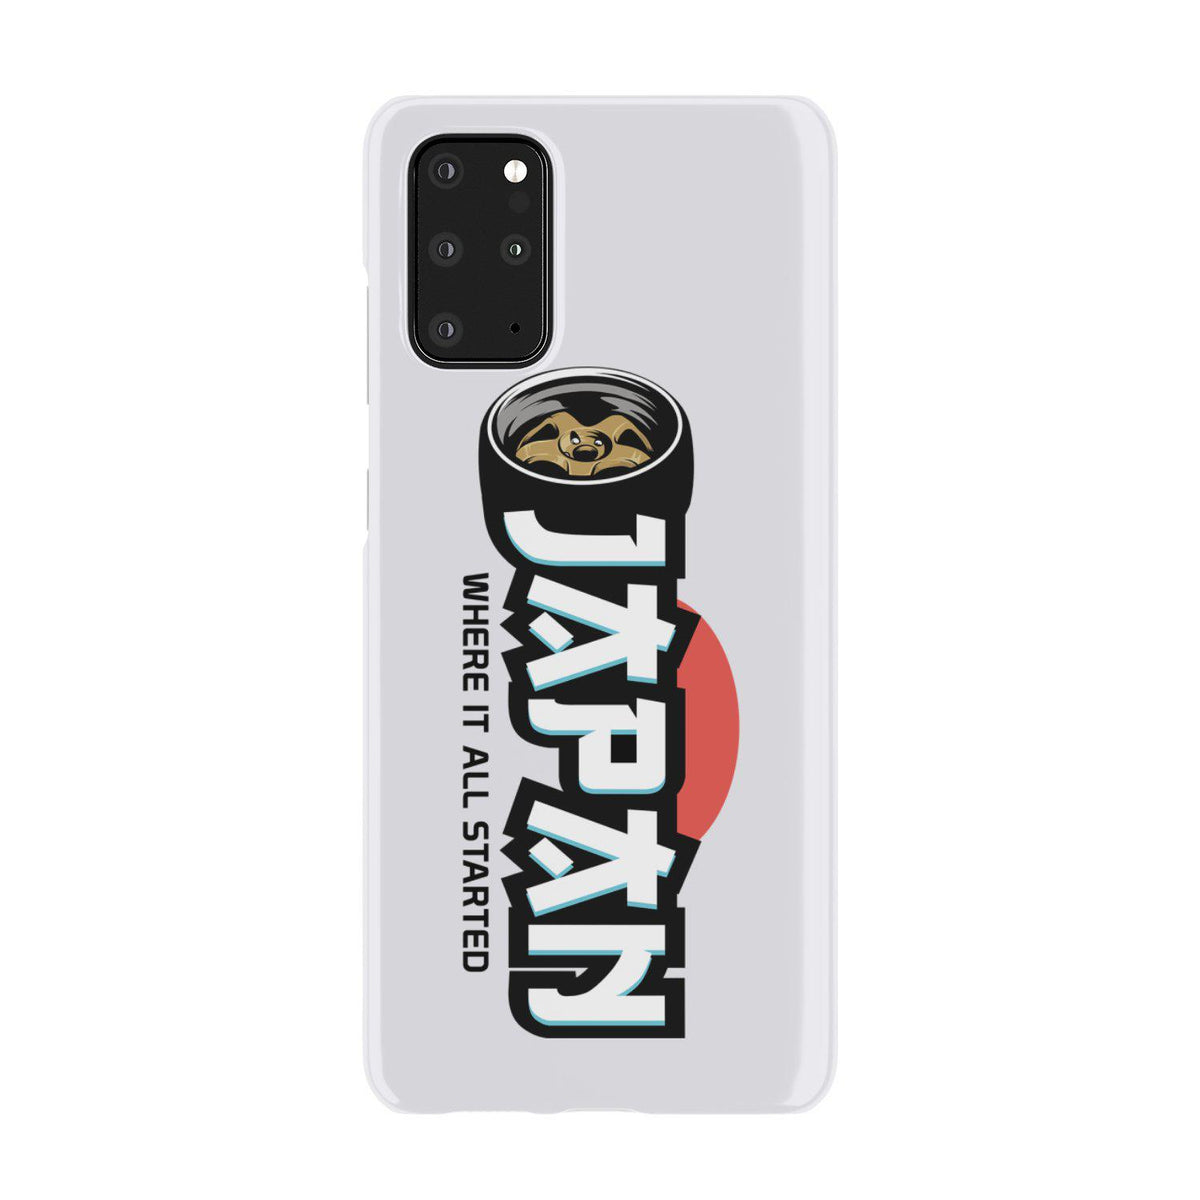 Japan - Where It All Started - Snap Case - for Samsung Galaxy S Models - TunerLifestyle